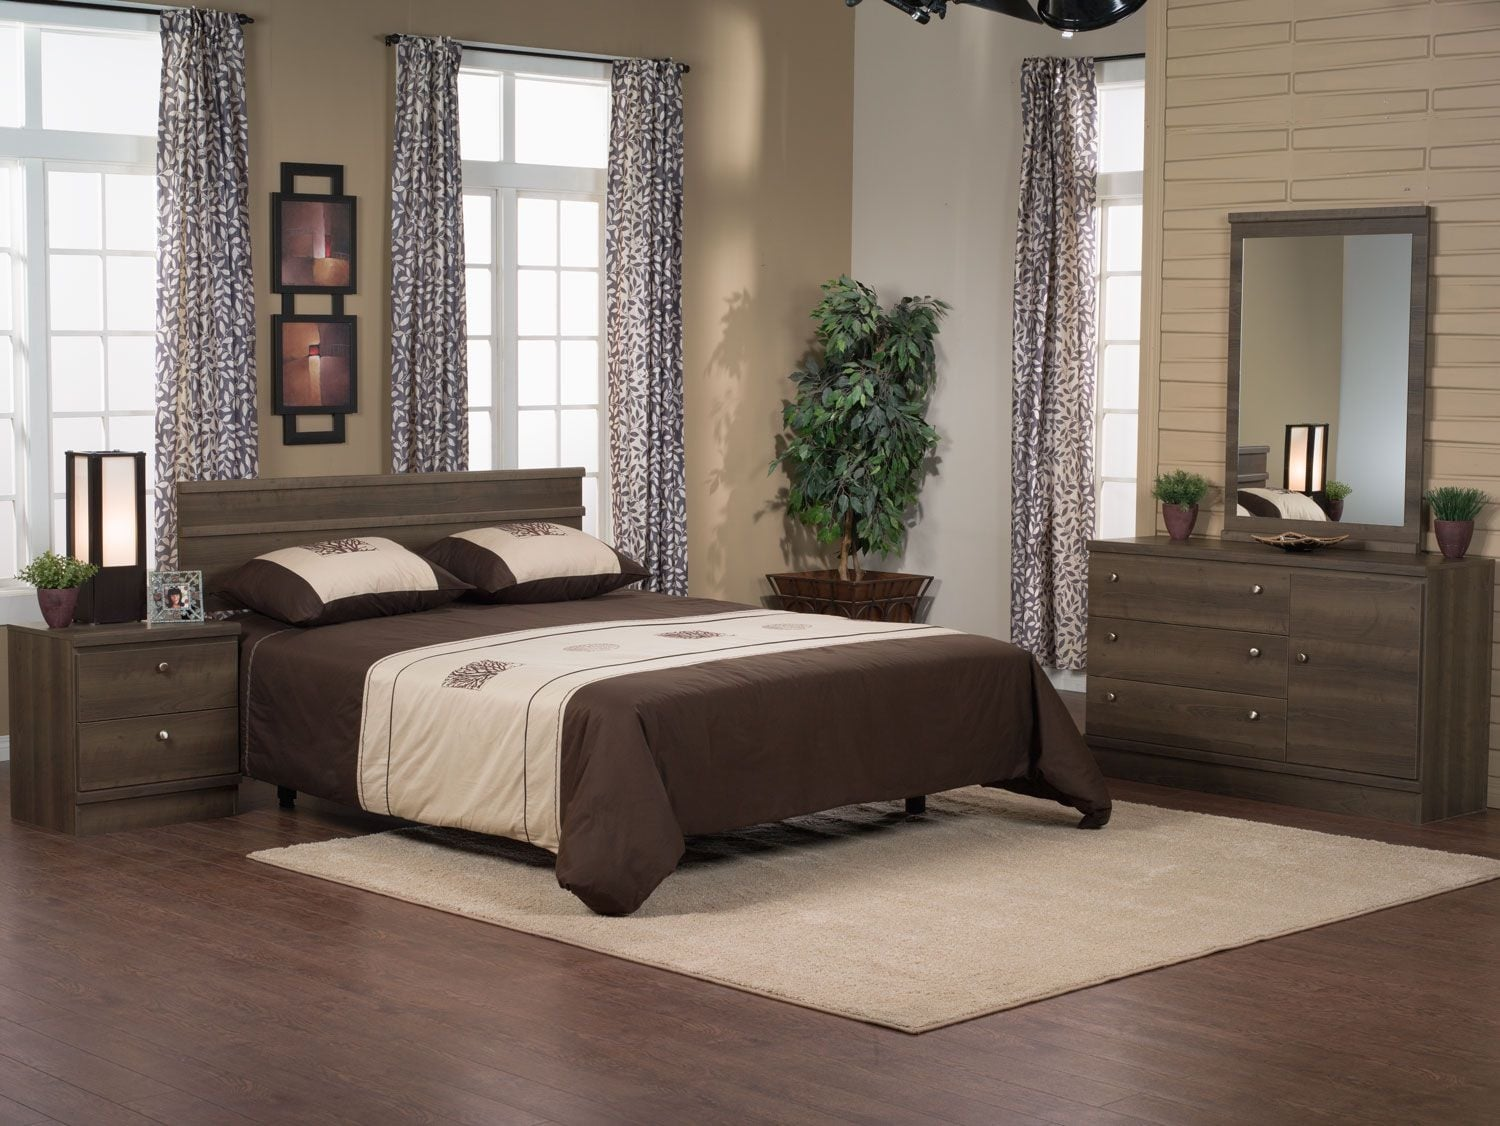 Loft 4-Piece Queen Bedroom Package – Grey-Brown